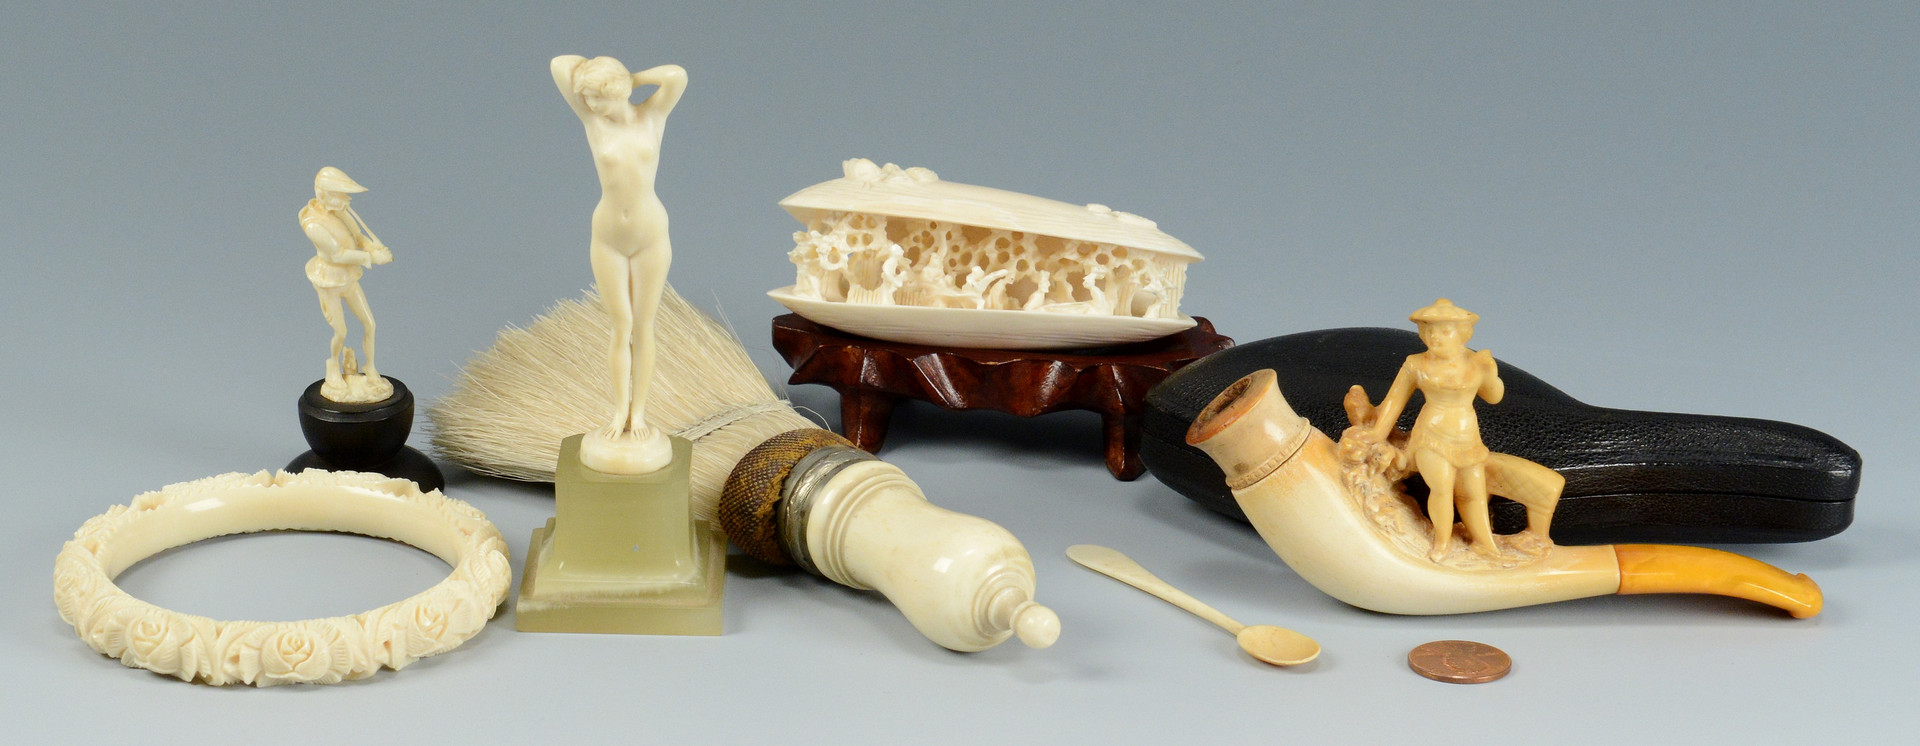 Lot 488: Assd. miniature items inc. ivory